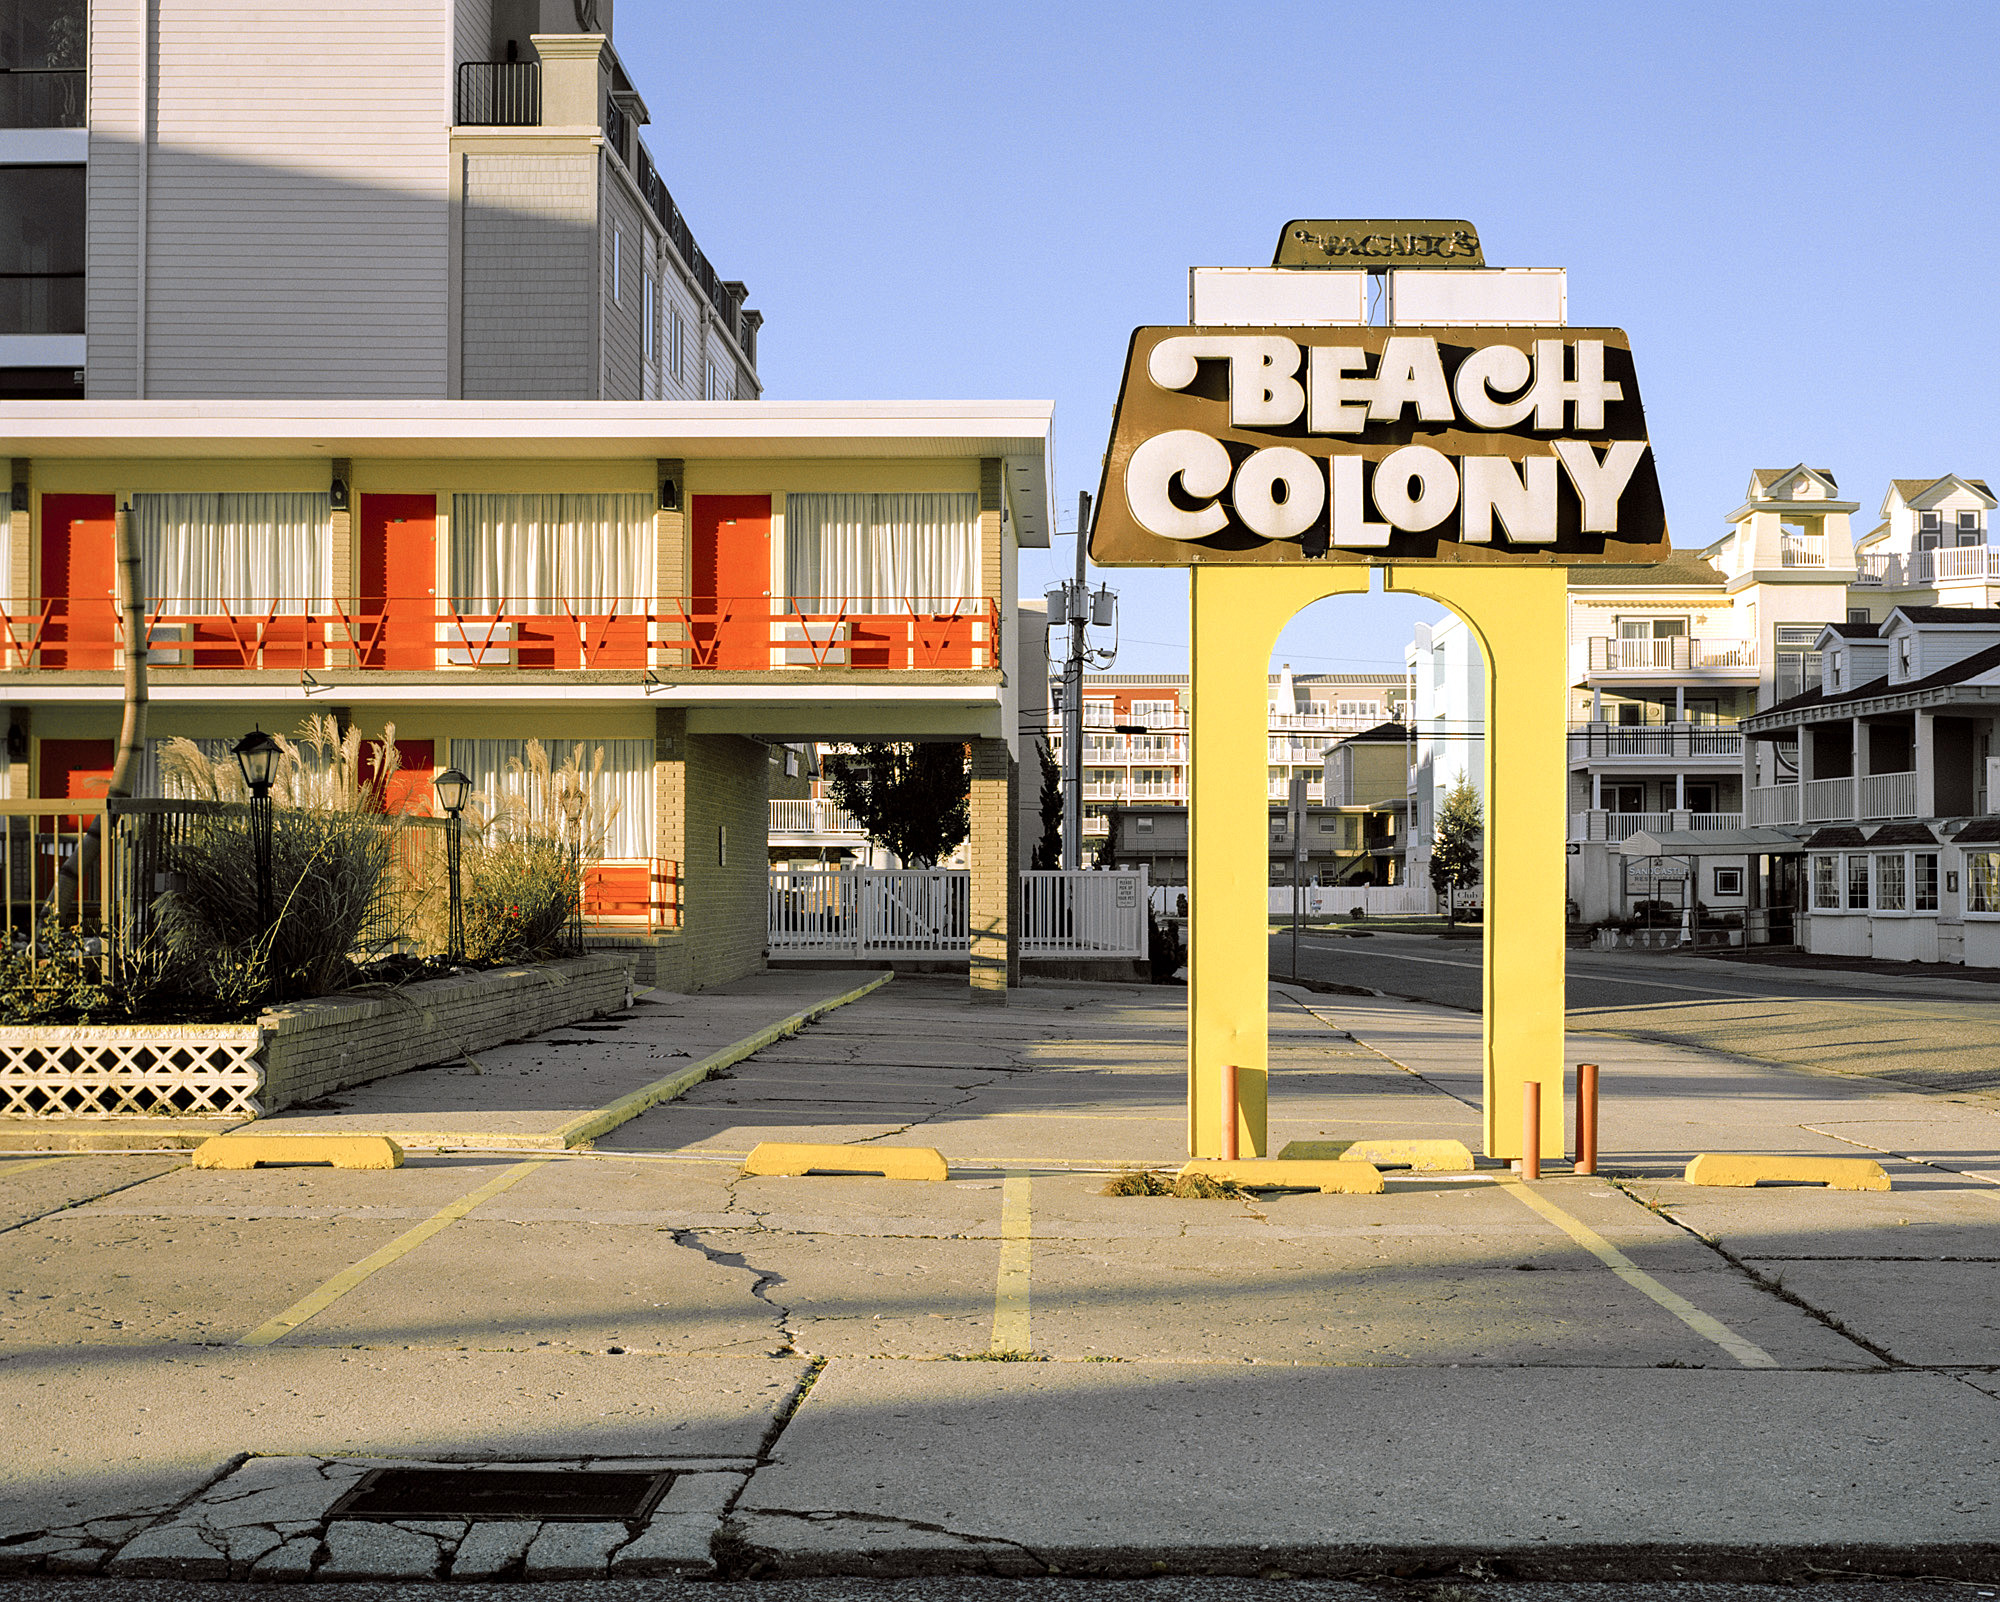 BEACH COLONY MOTEL